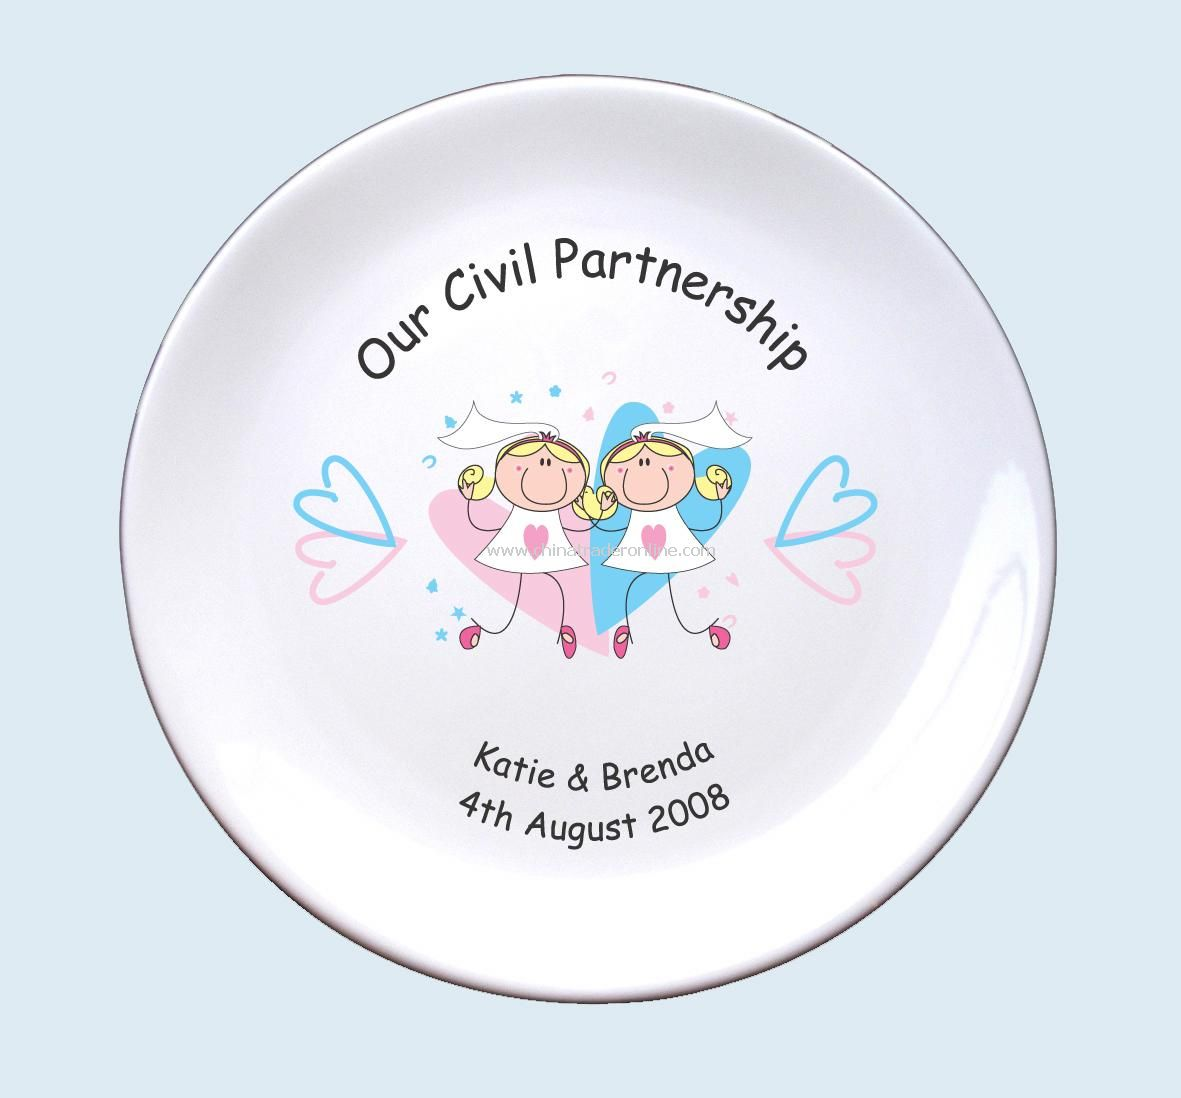 Civil Partnership Plate Mrs & Mrs from China